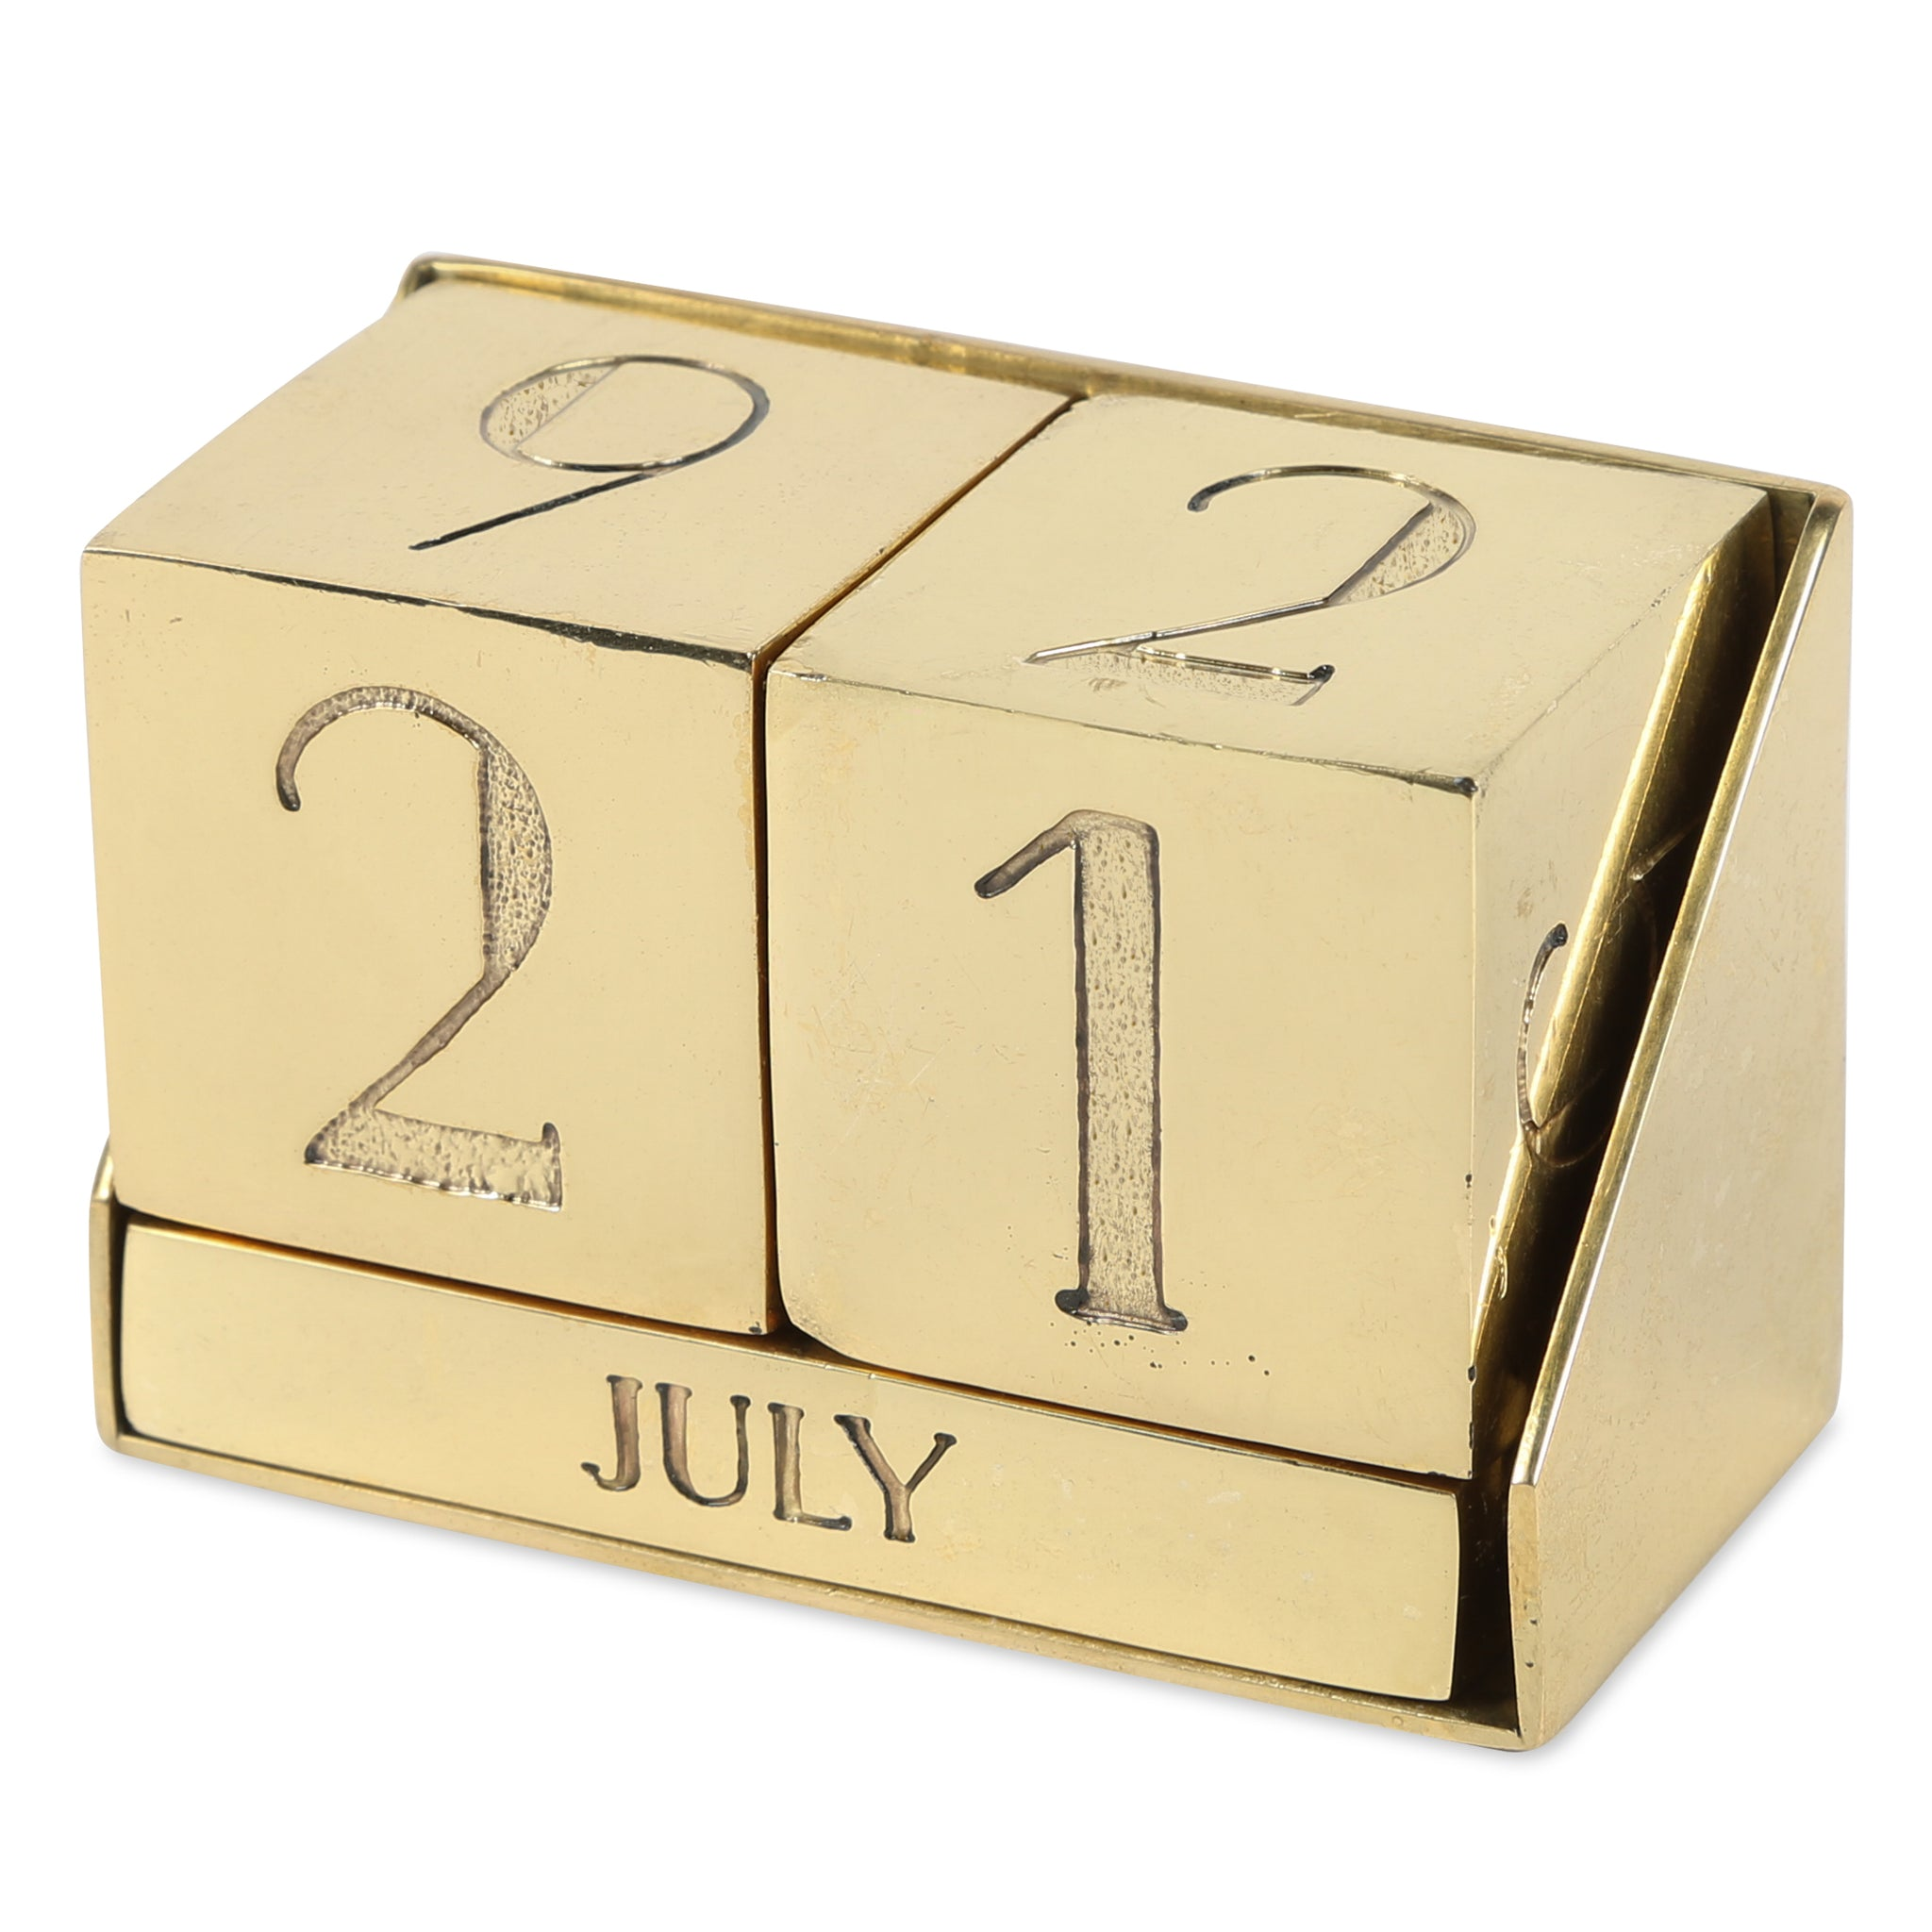 Block Perpetual Calendar Design By Sir Madam Burke Decor